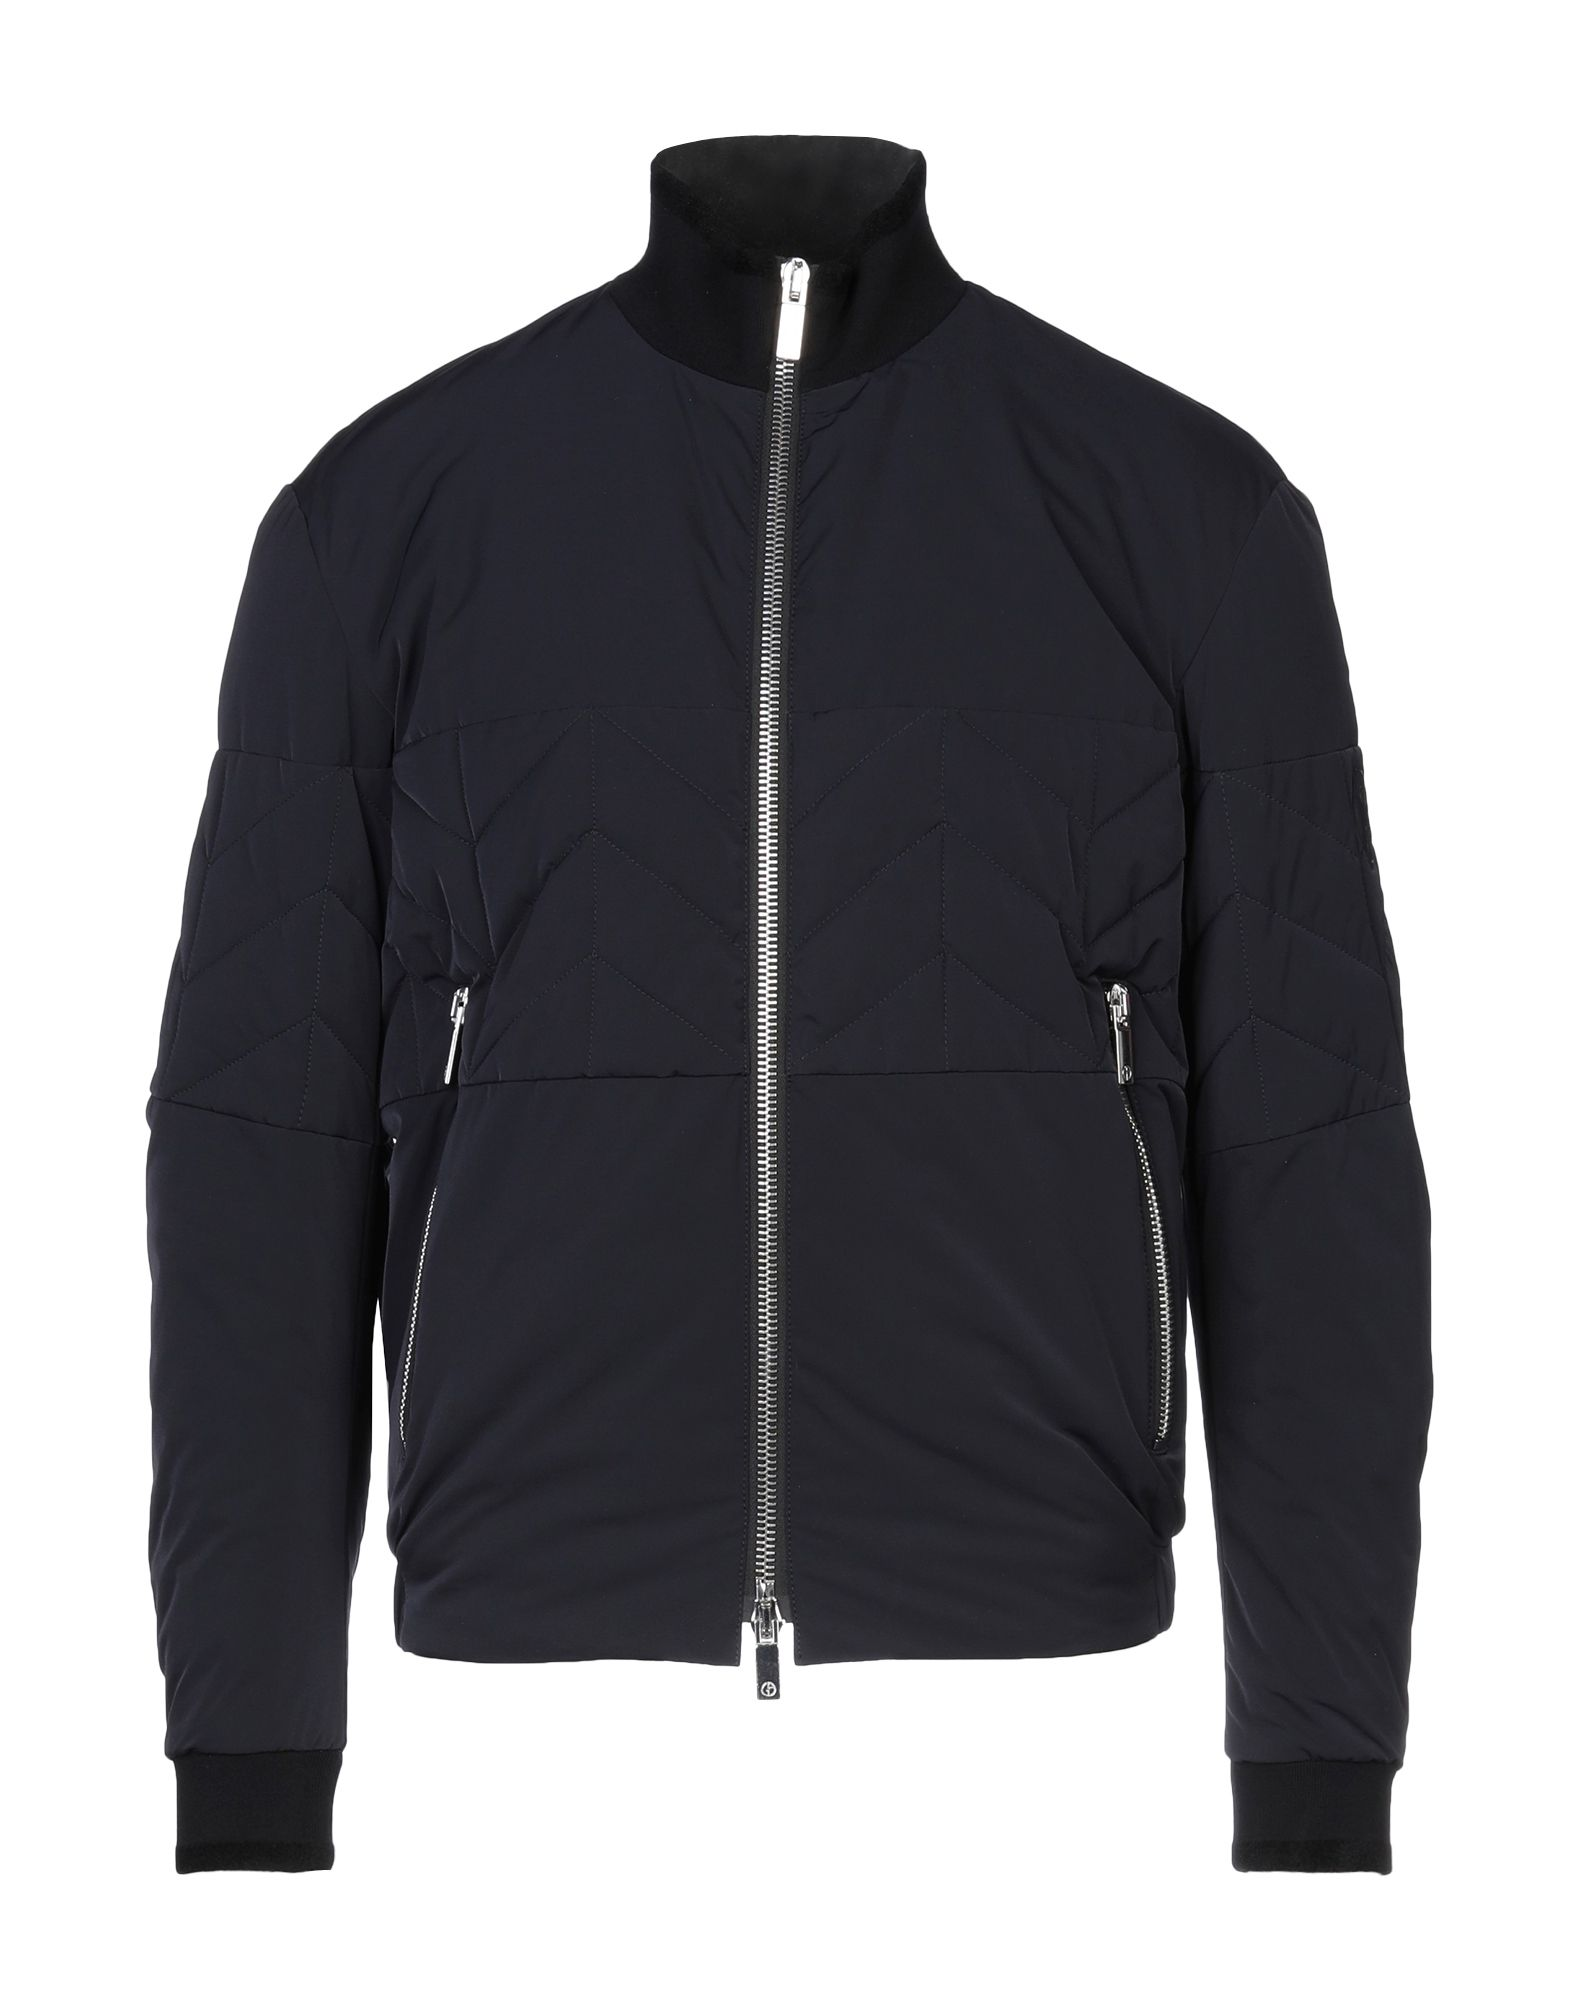 GIORGIO ARMANI Synthetic Down Jackets. techno fabric, logo, stitching, basic solid color, single-breasted, zip, turtleneck, multipockets, long sleeves, interior padded with cashmere. 100% Polyester, Polyamide, Elastane, Viscose